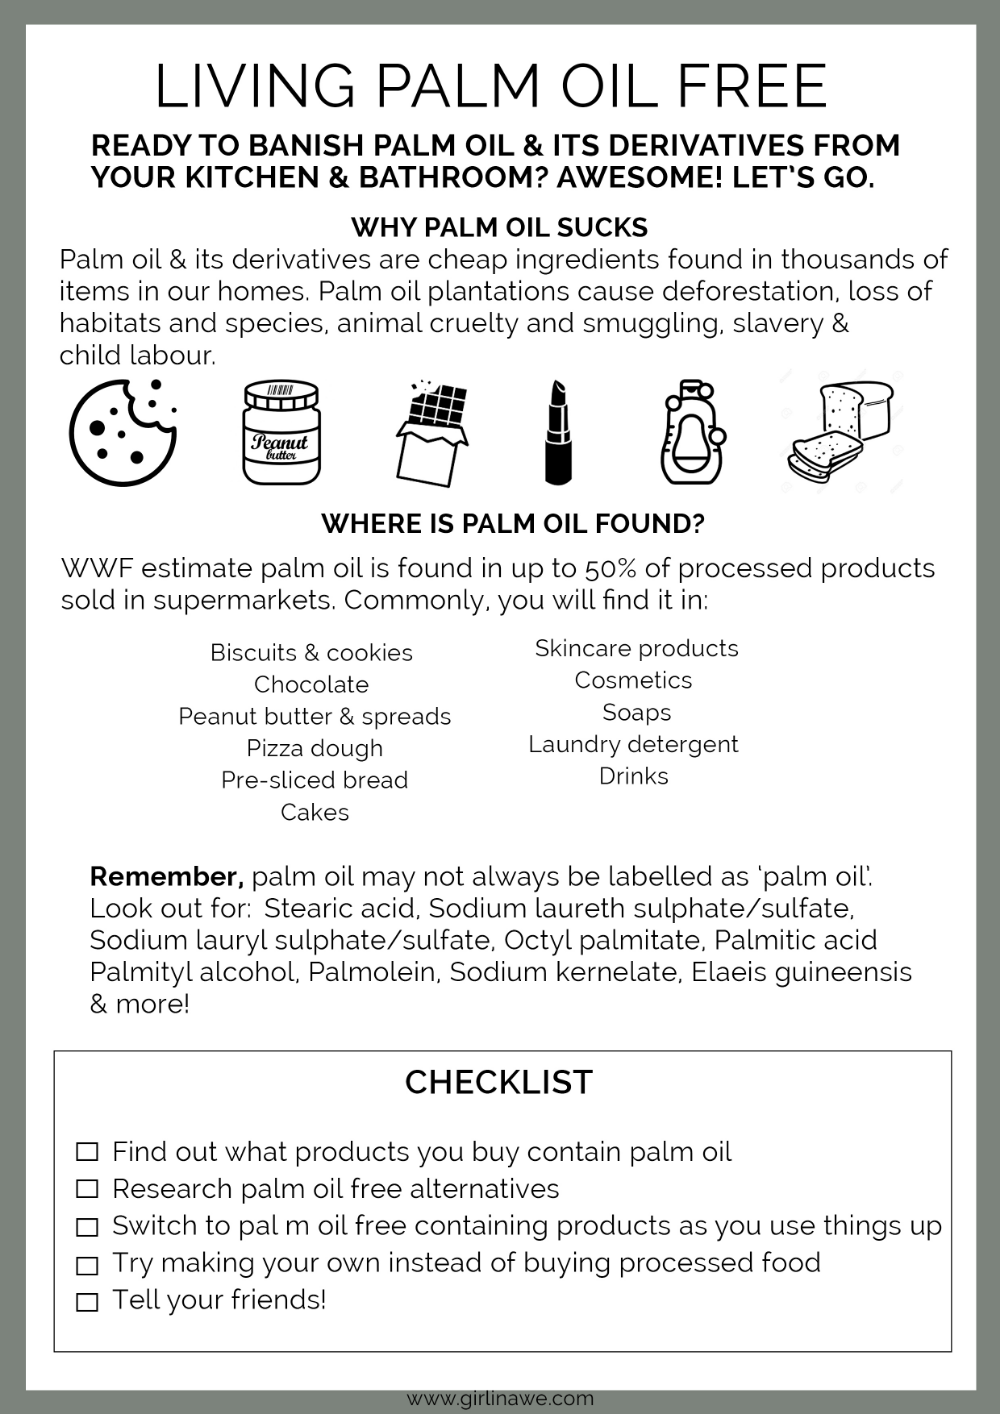 Palm Oil Why Is It Bad How To Live Palm Oil Free A